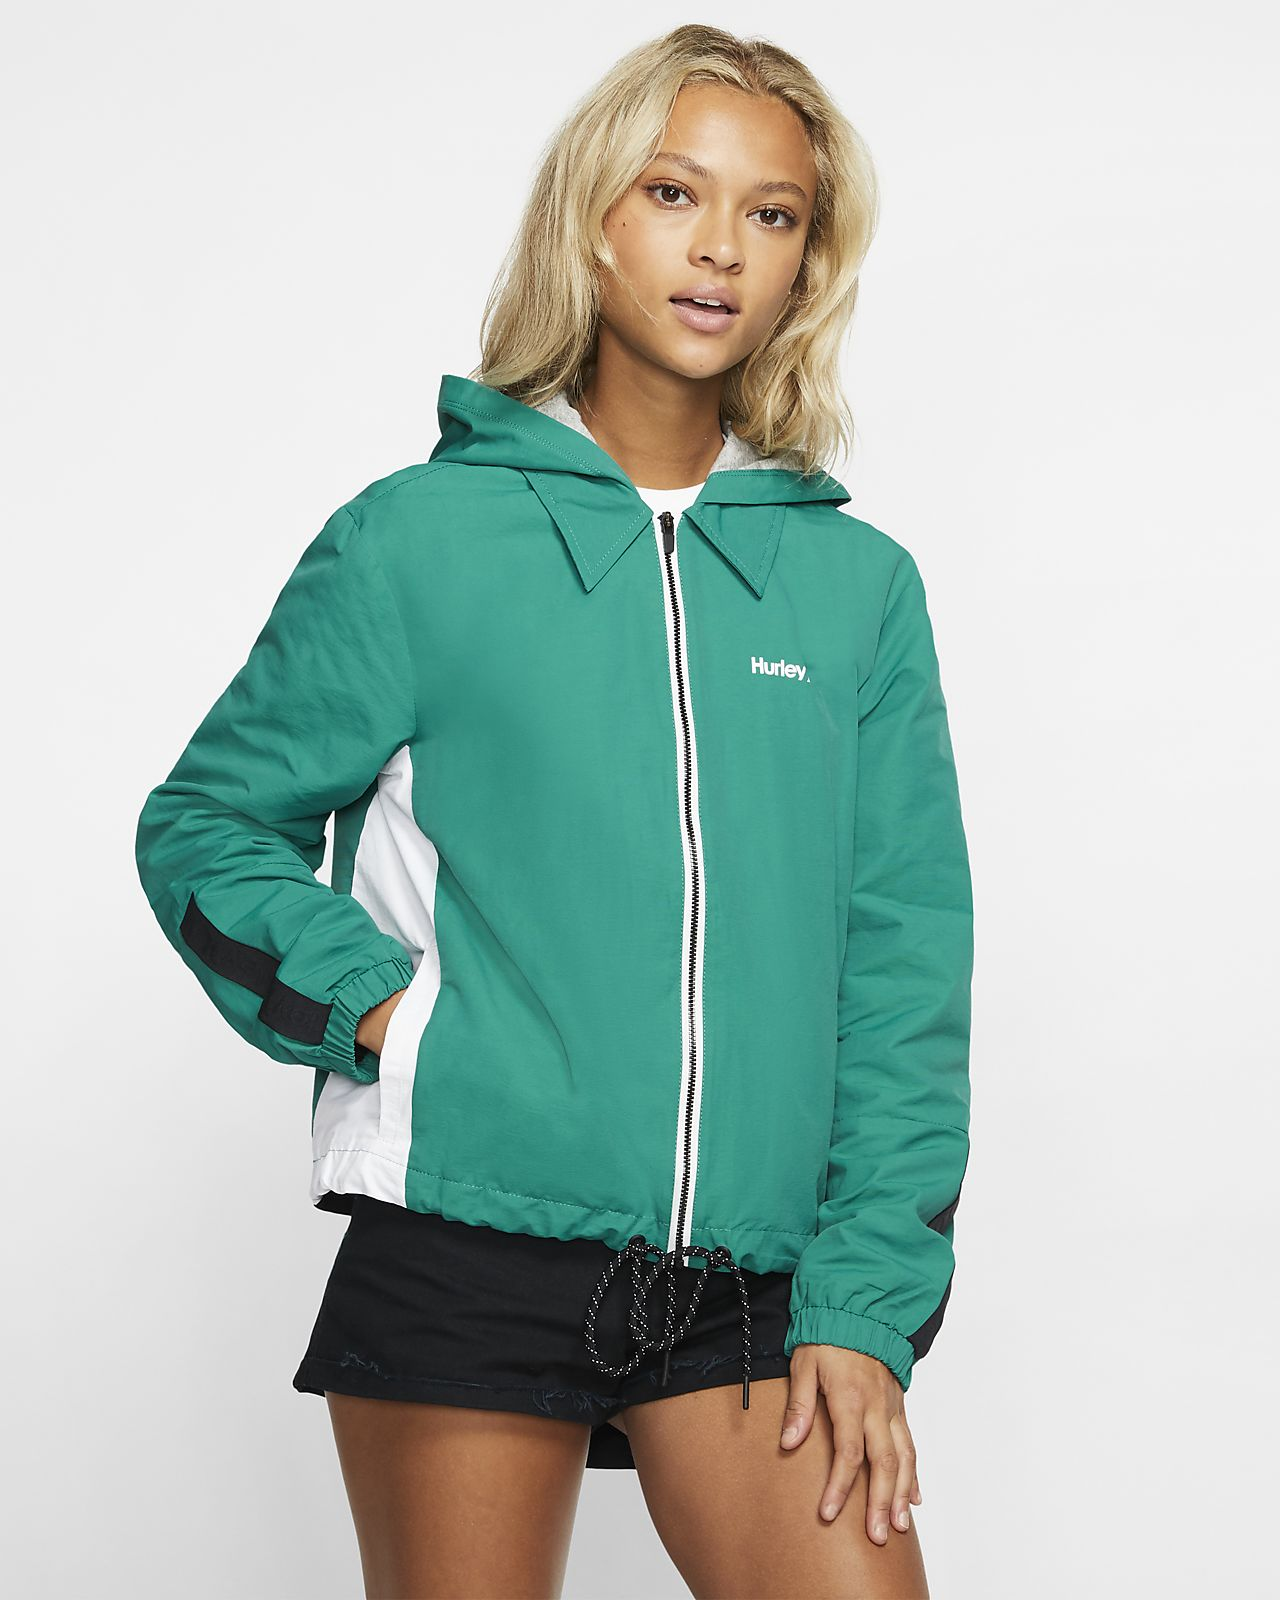 Hurley One And Only Women's Hooded Jacket